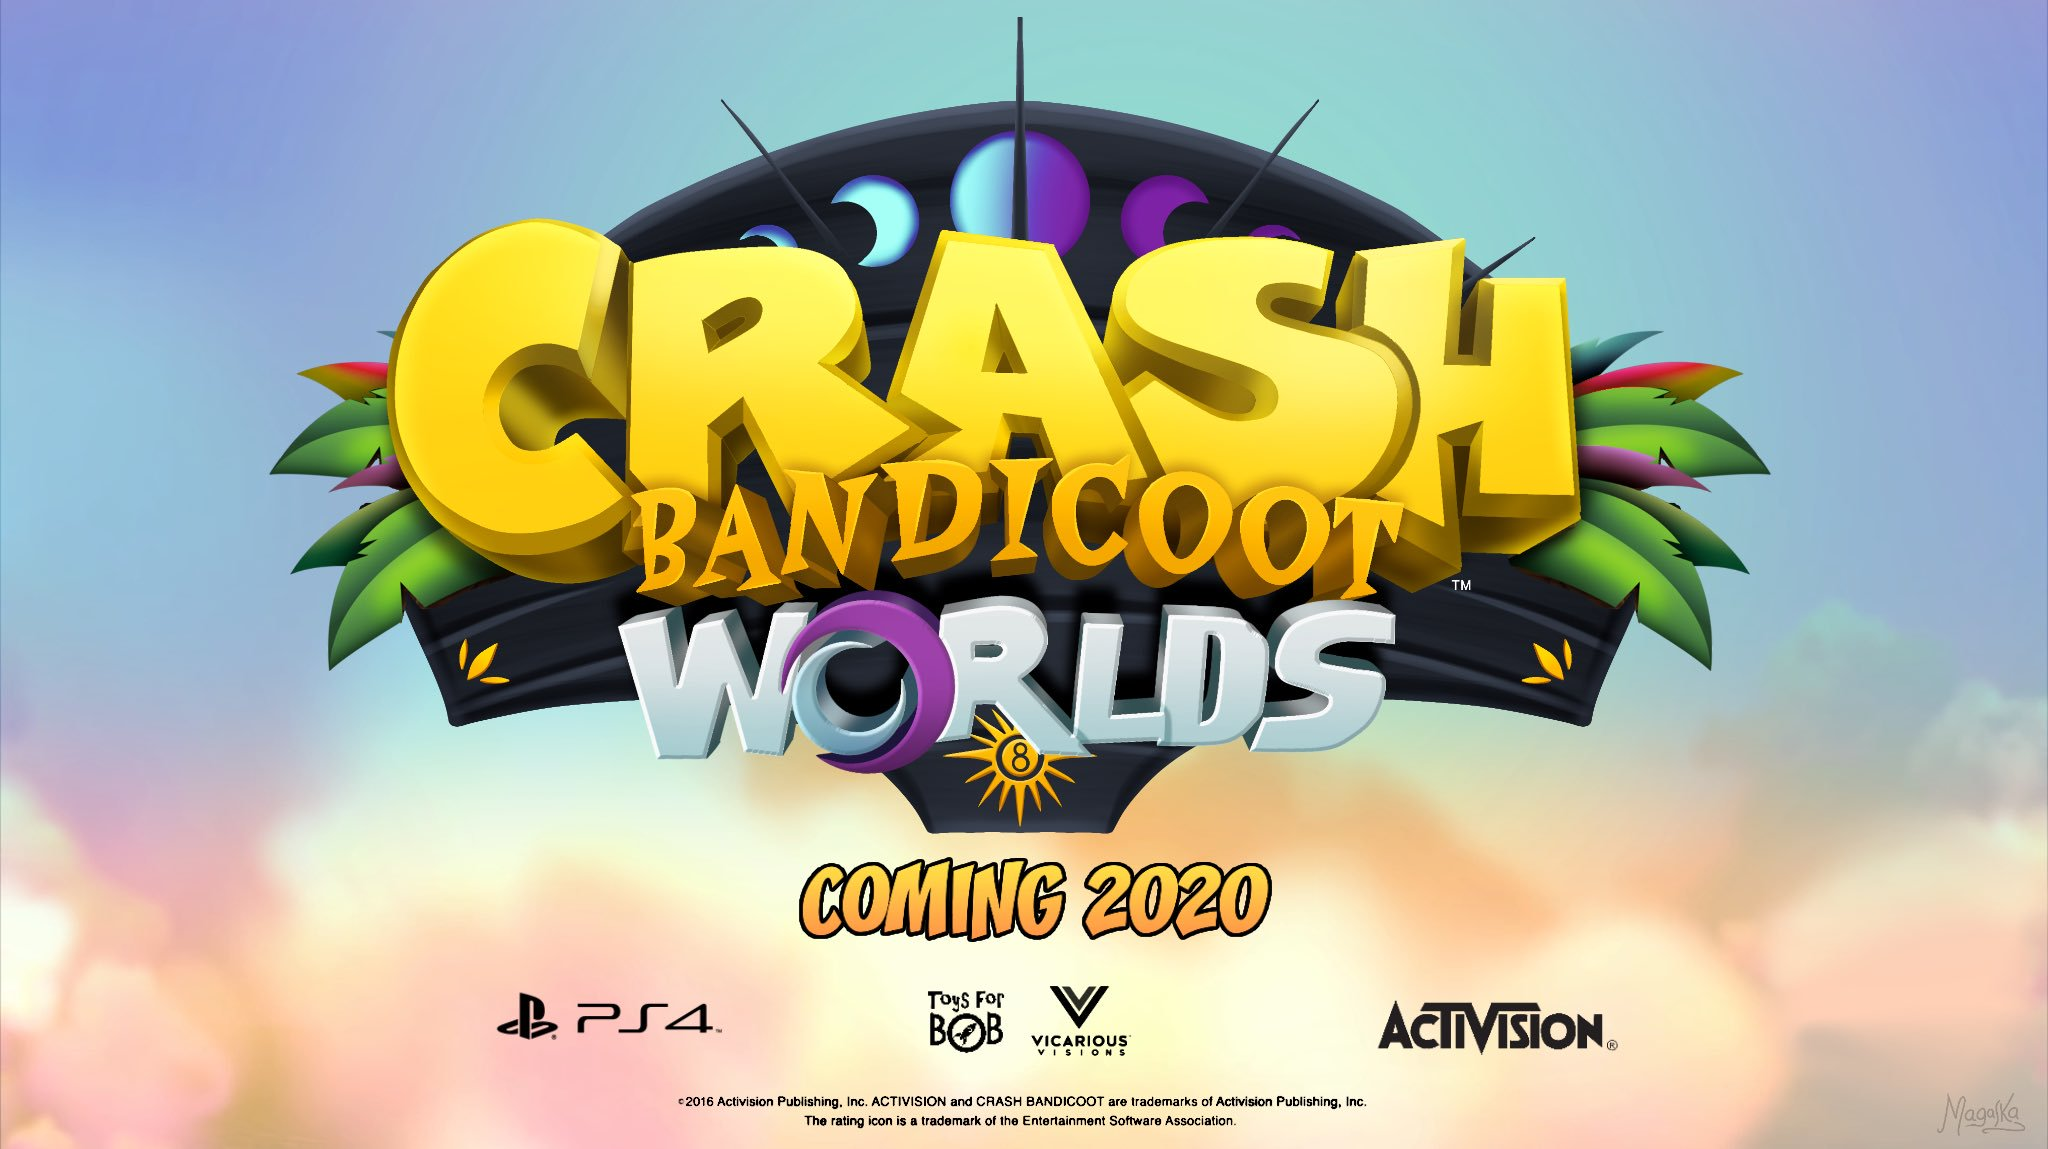 Crash Bandicoot Worlds